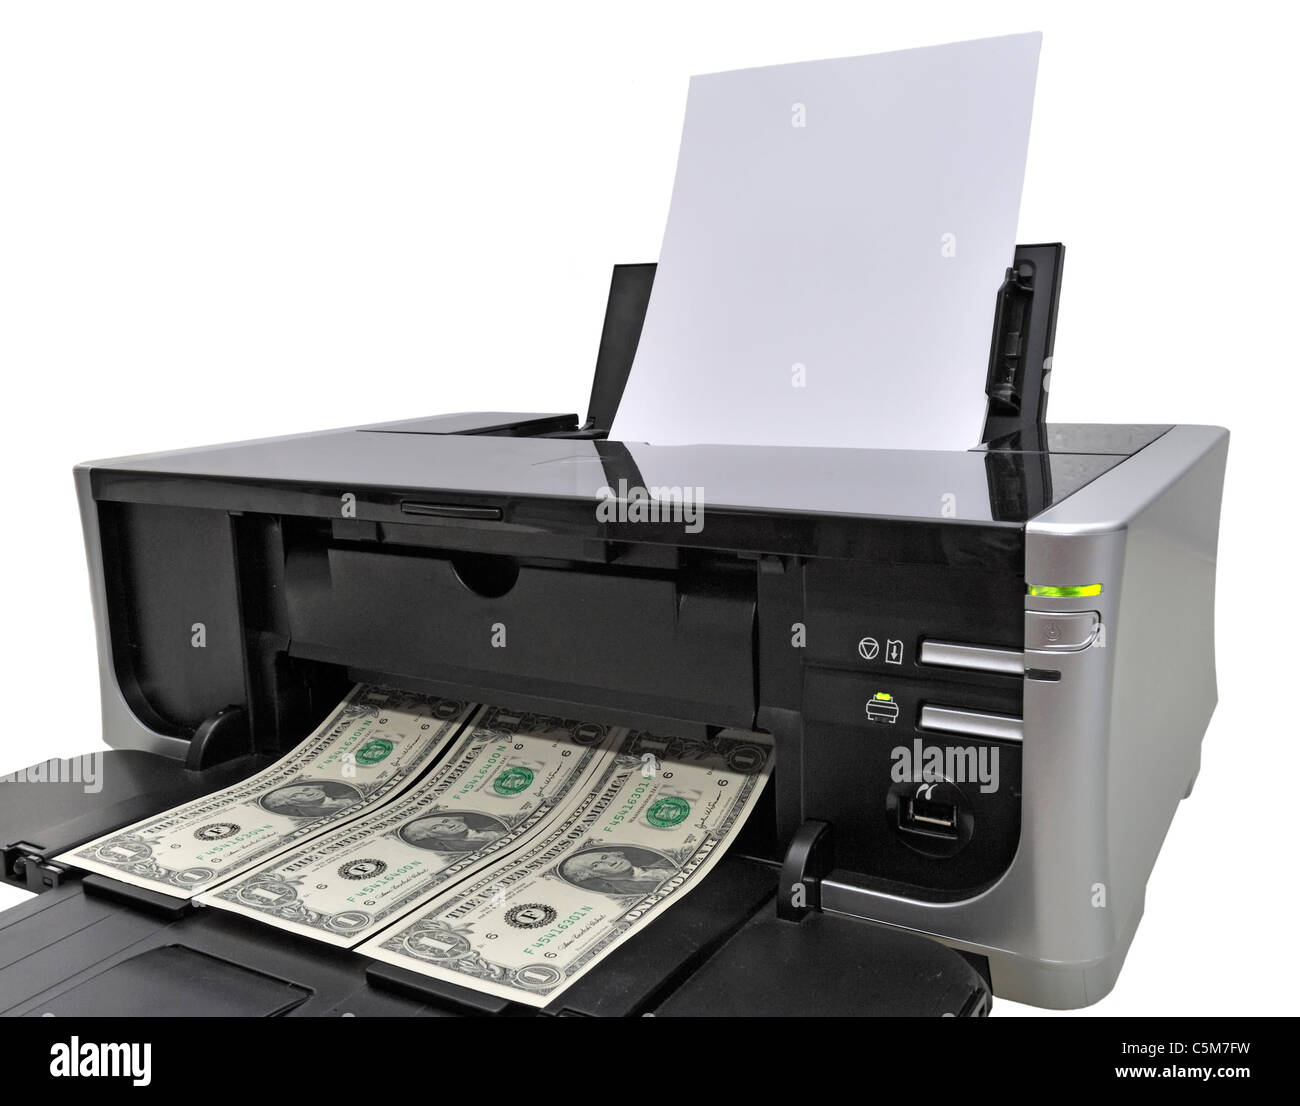 US Dollar Notes and Printer Stock Photo: 37938989 - Alamy